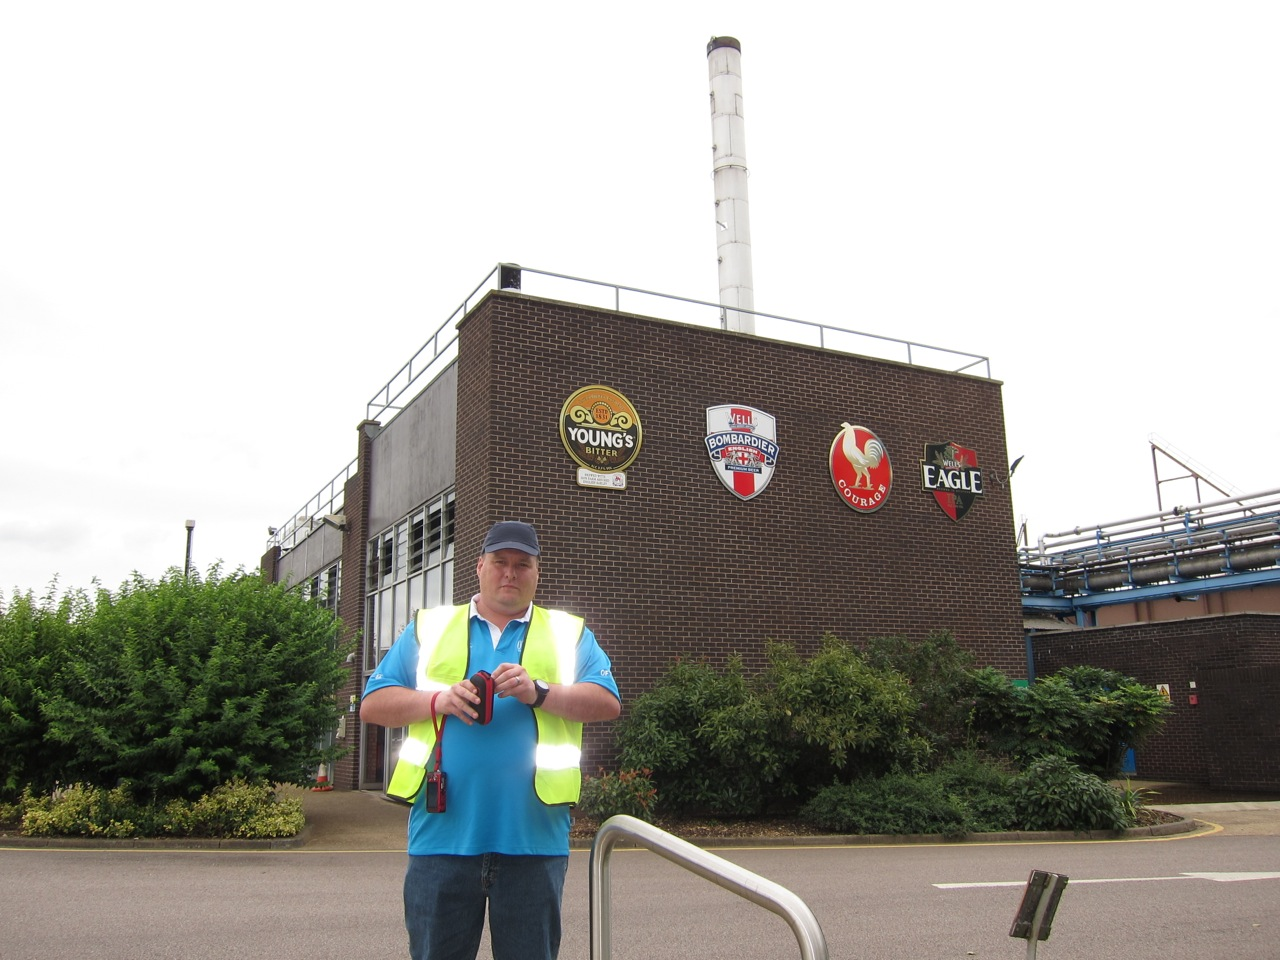 Jason's trip to the Wells and Youngs Brewery